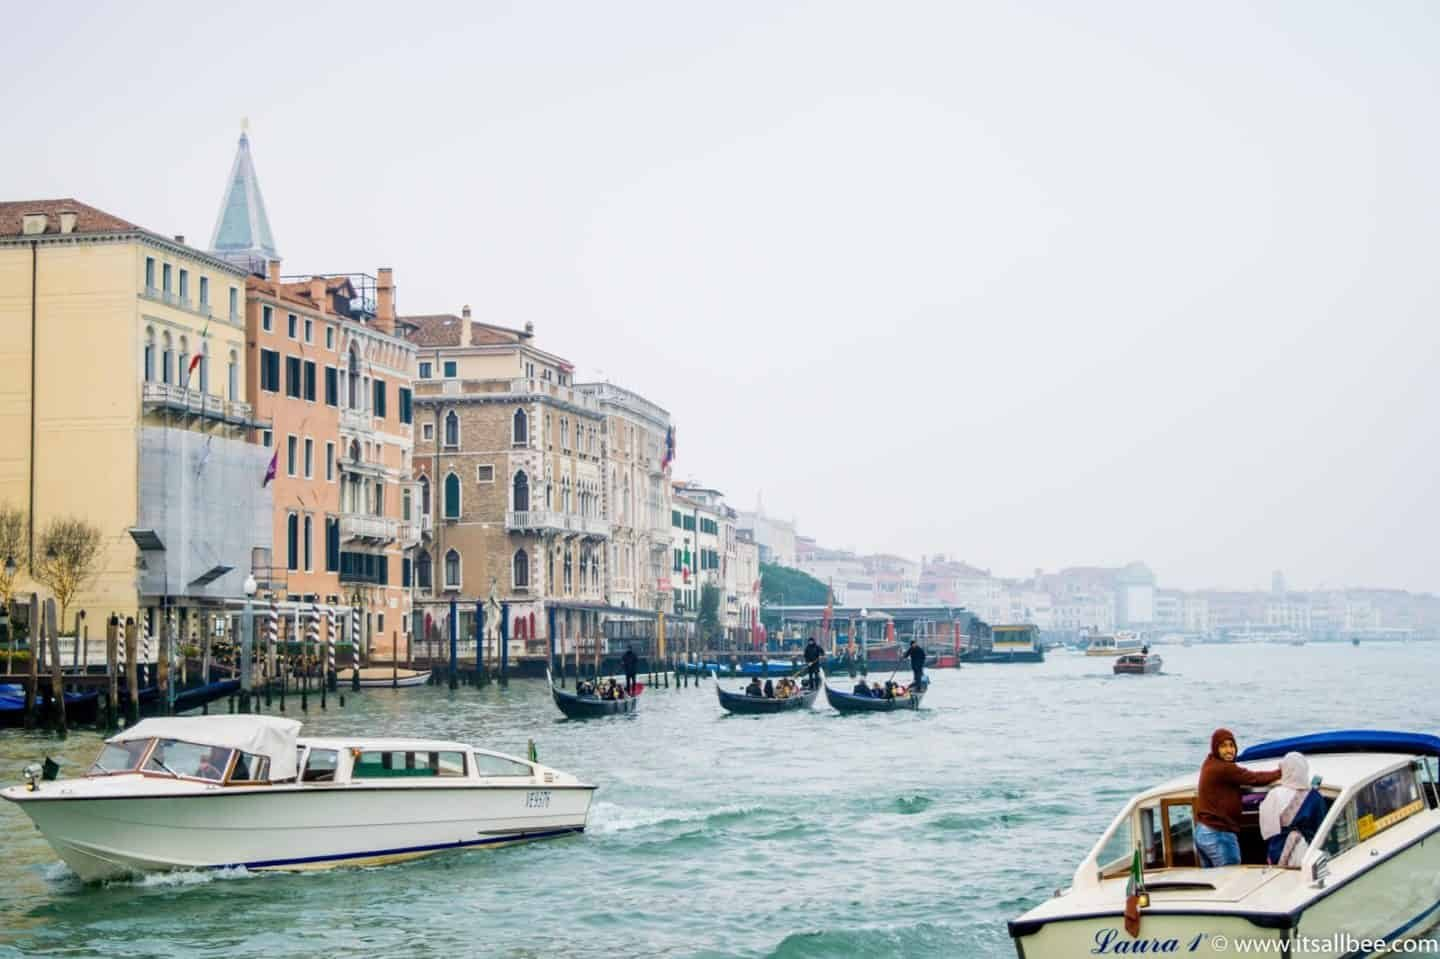 Venice taxis on the grand canal